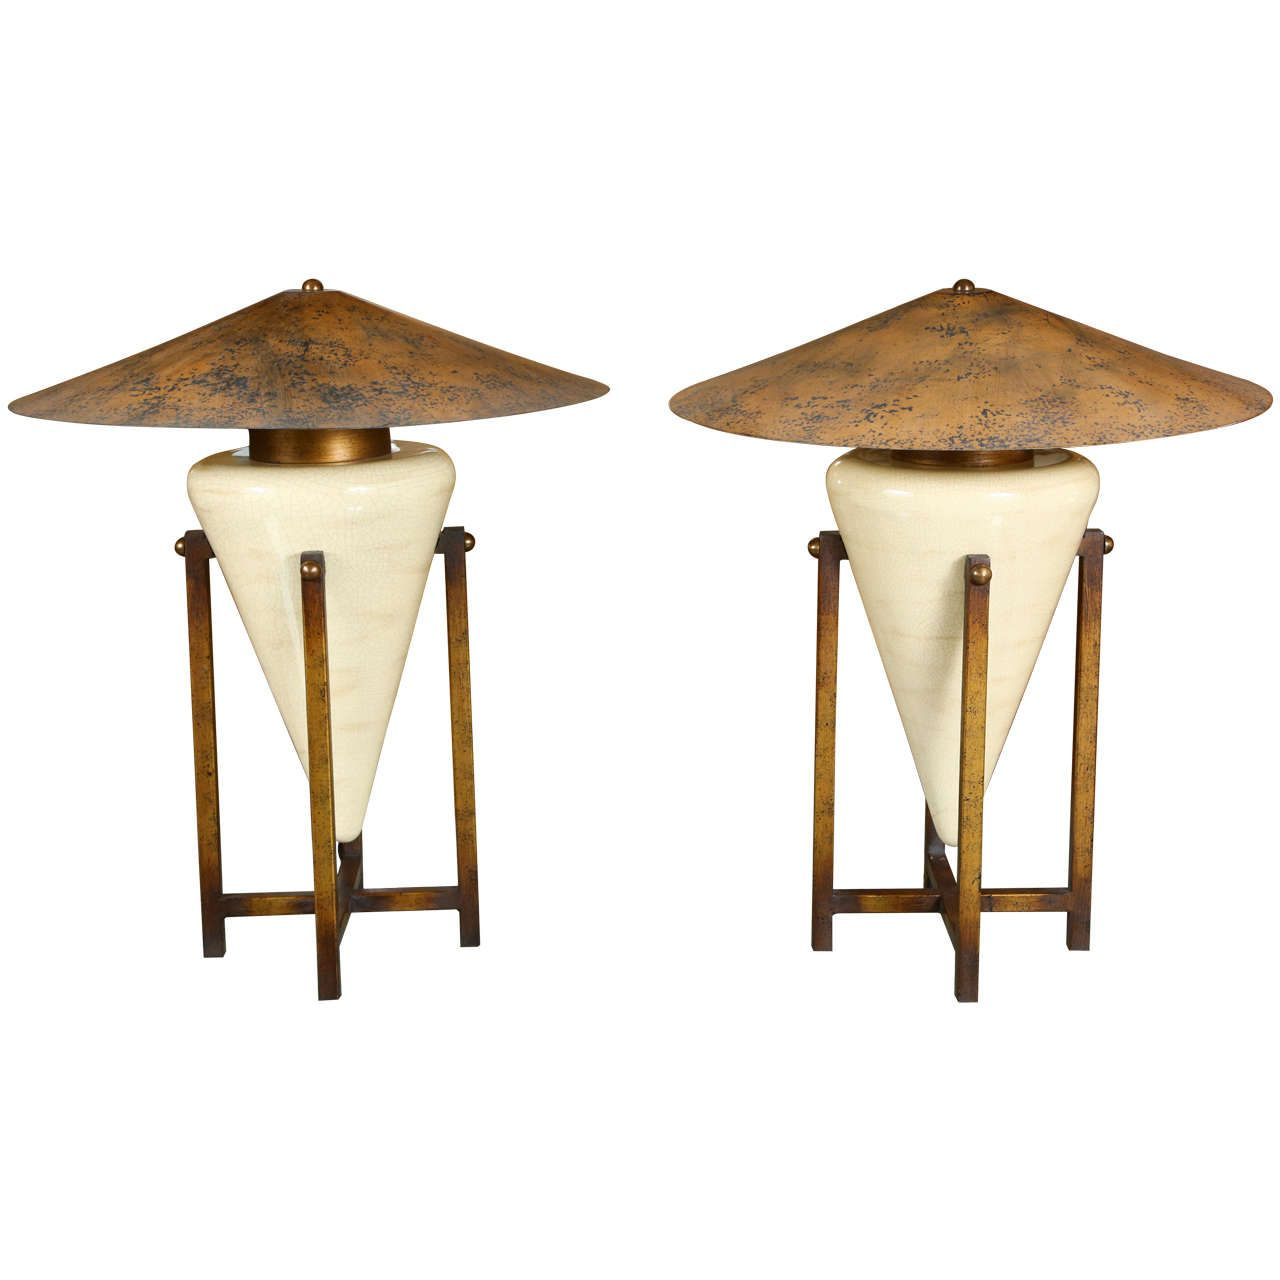 Unusual Table Lamps of unusual table lamps with ceramic bases in antiqued wooden cradles